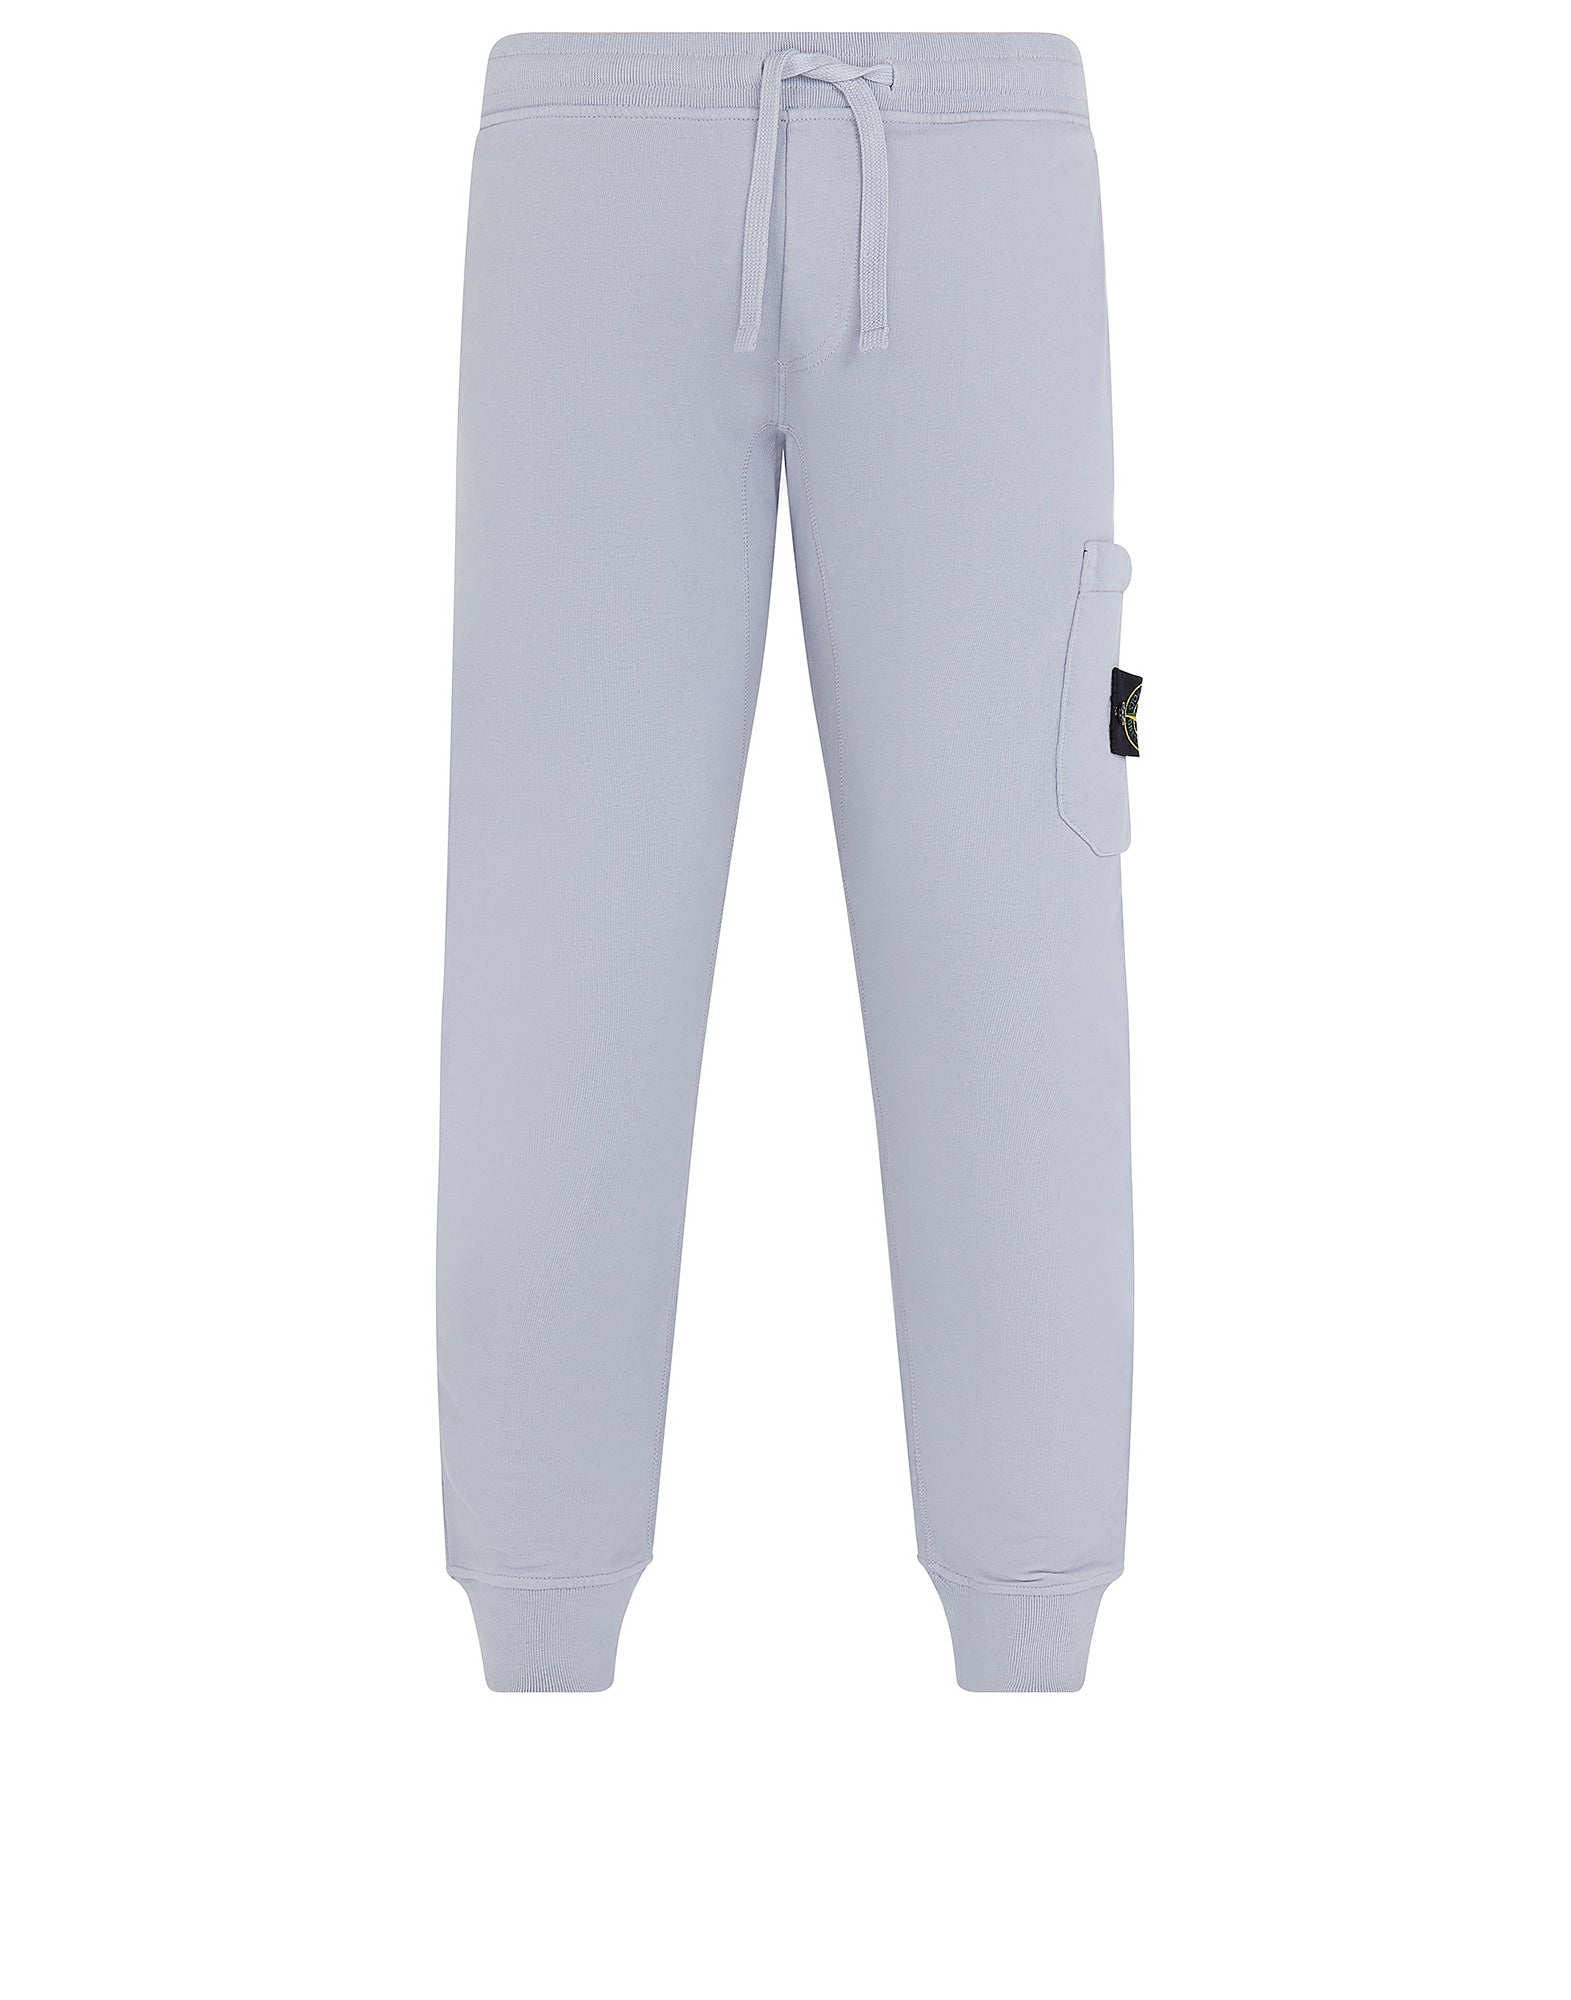 60340 Fleece Jogging Pants in Purple